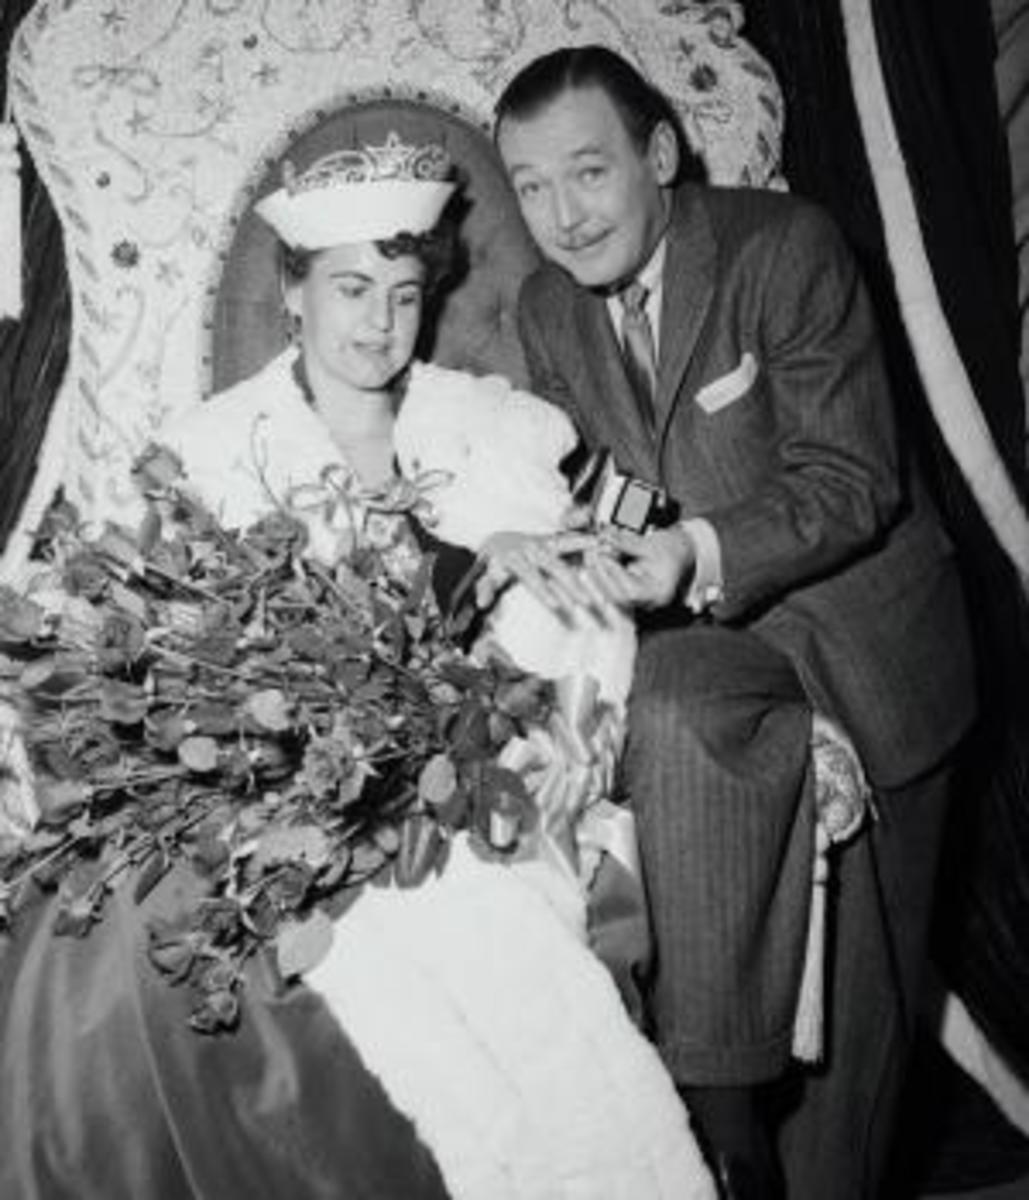 "Miss Wilhelmina Van Son, 27, elected ""Queen for a Day"" on the NBC-TV with emcee Jack Bailey. She won a flight to Florida along with an engagement-wedding ring ensemble. Once in Florida, a Navy helicopter would fly her aboard the USS Randolph, an aircraft carrier on which she would meet the 2,500-man crew in hopes of finding a husband. (Credit: Bettmann/Getty Images)"